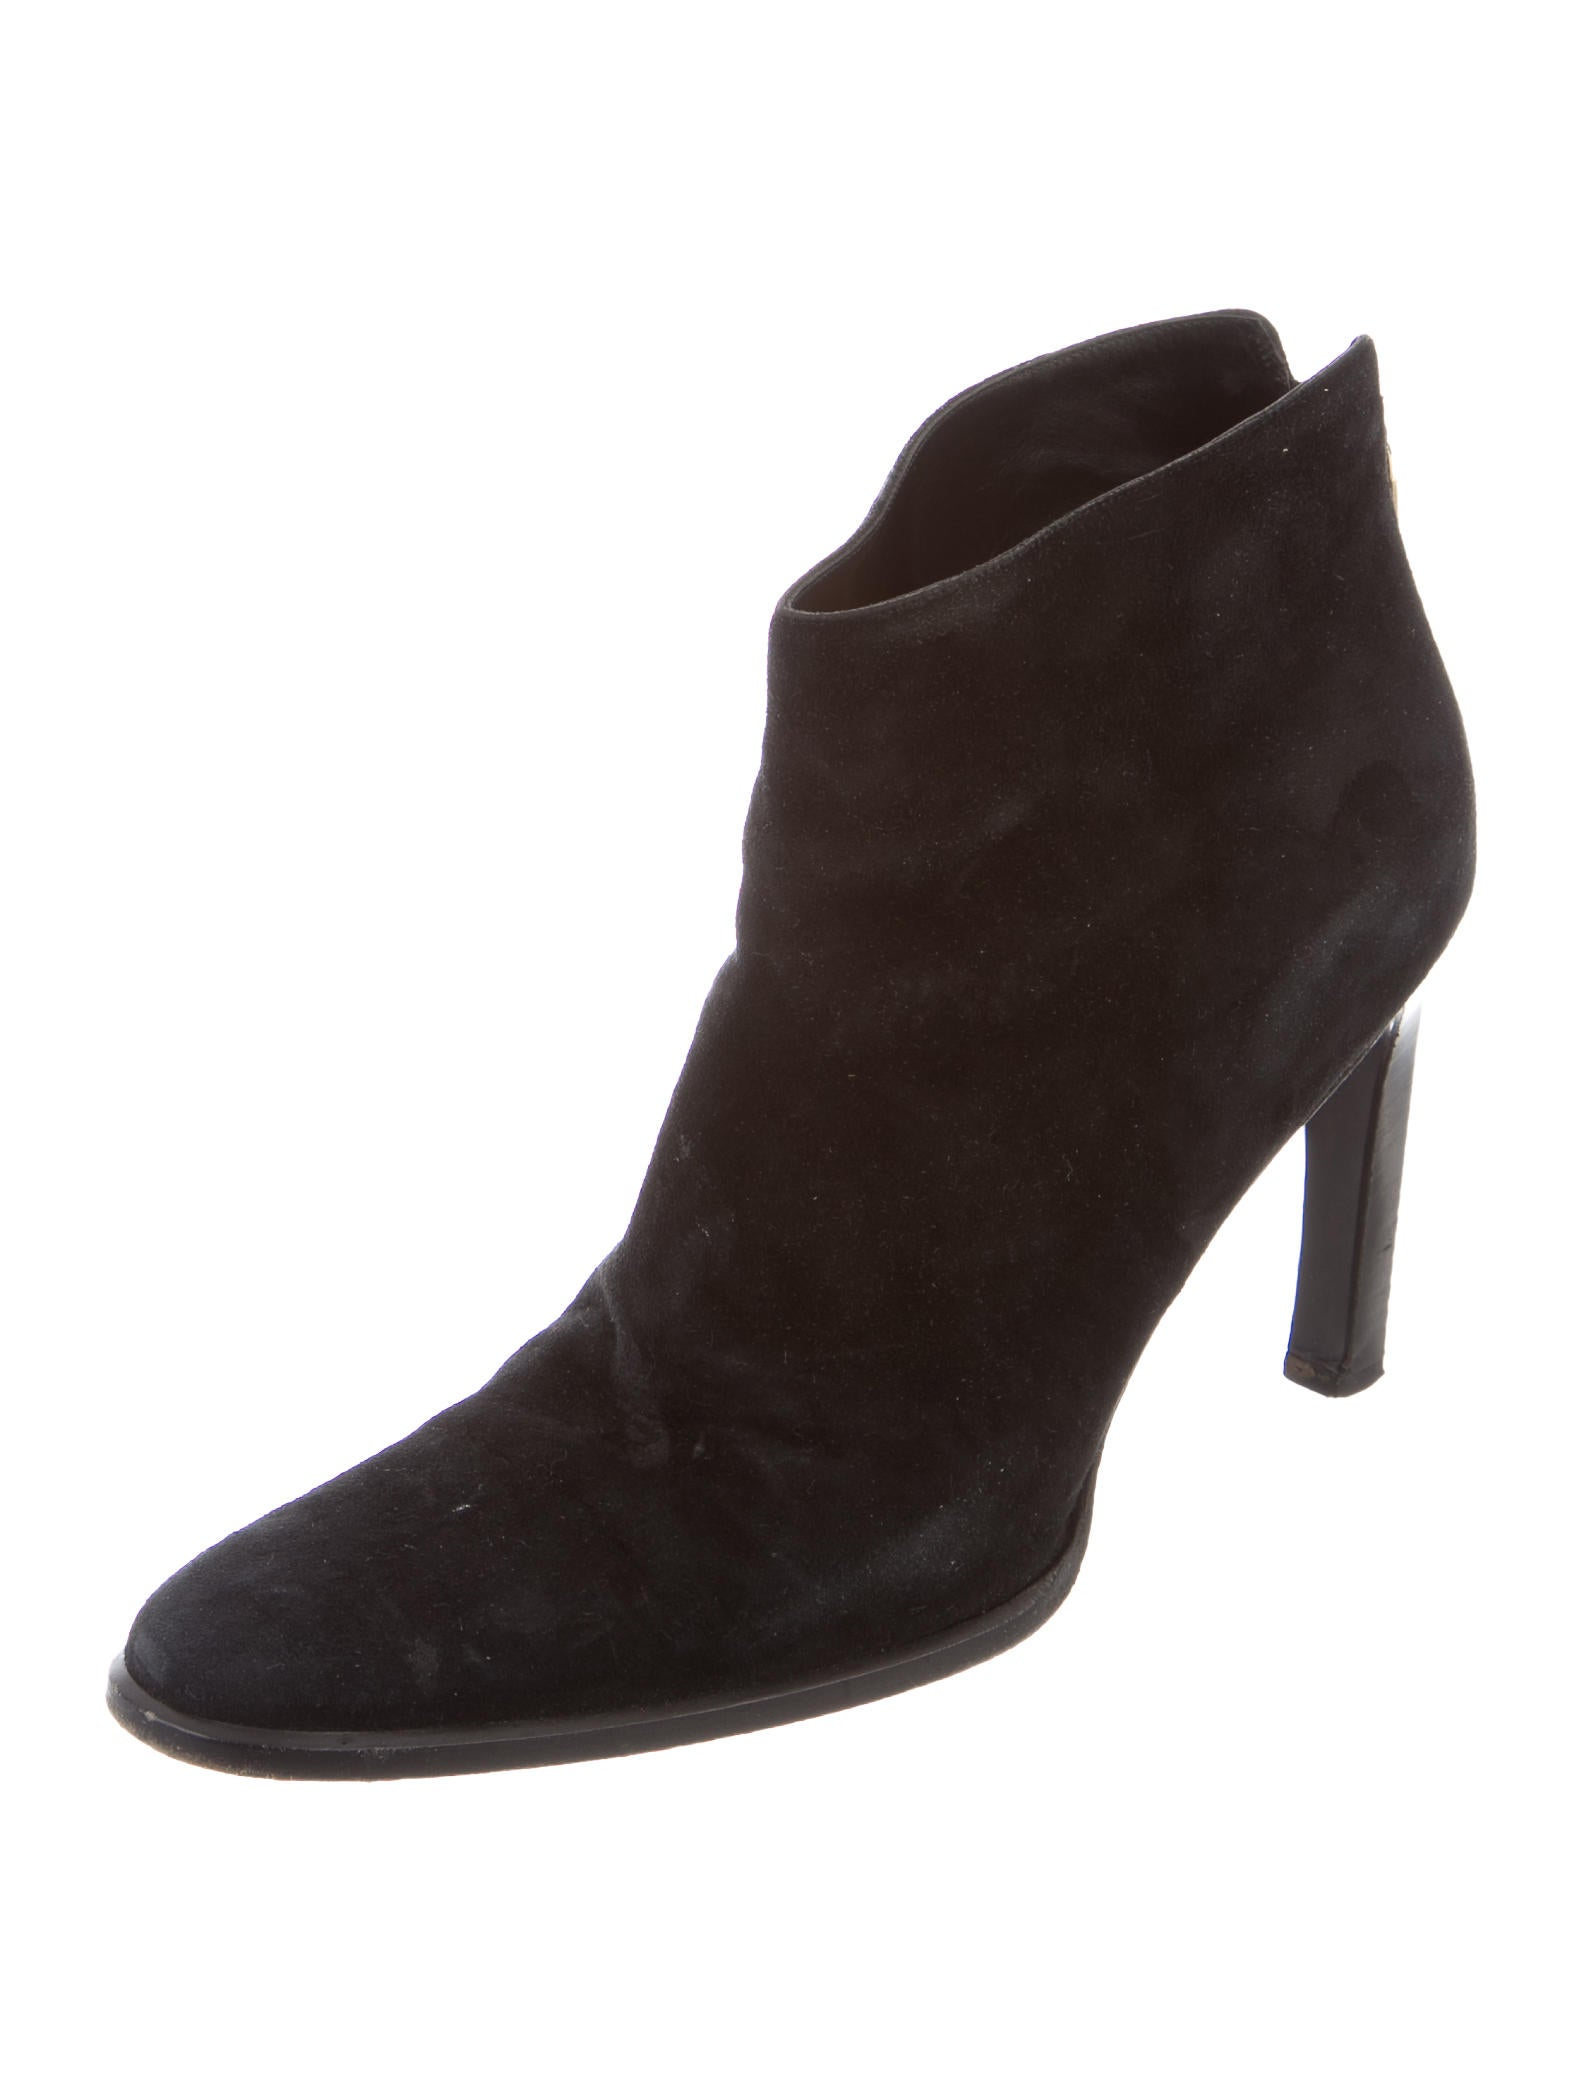 gucci suede toe ankle boots shoes guc131435